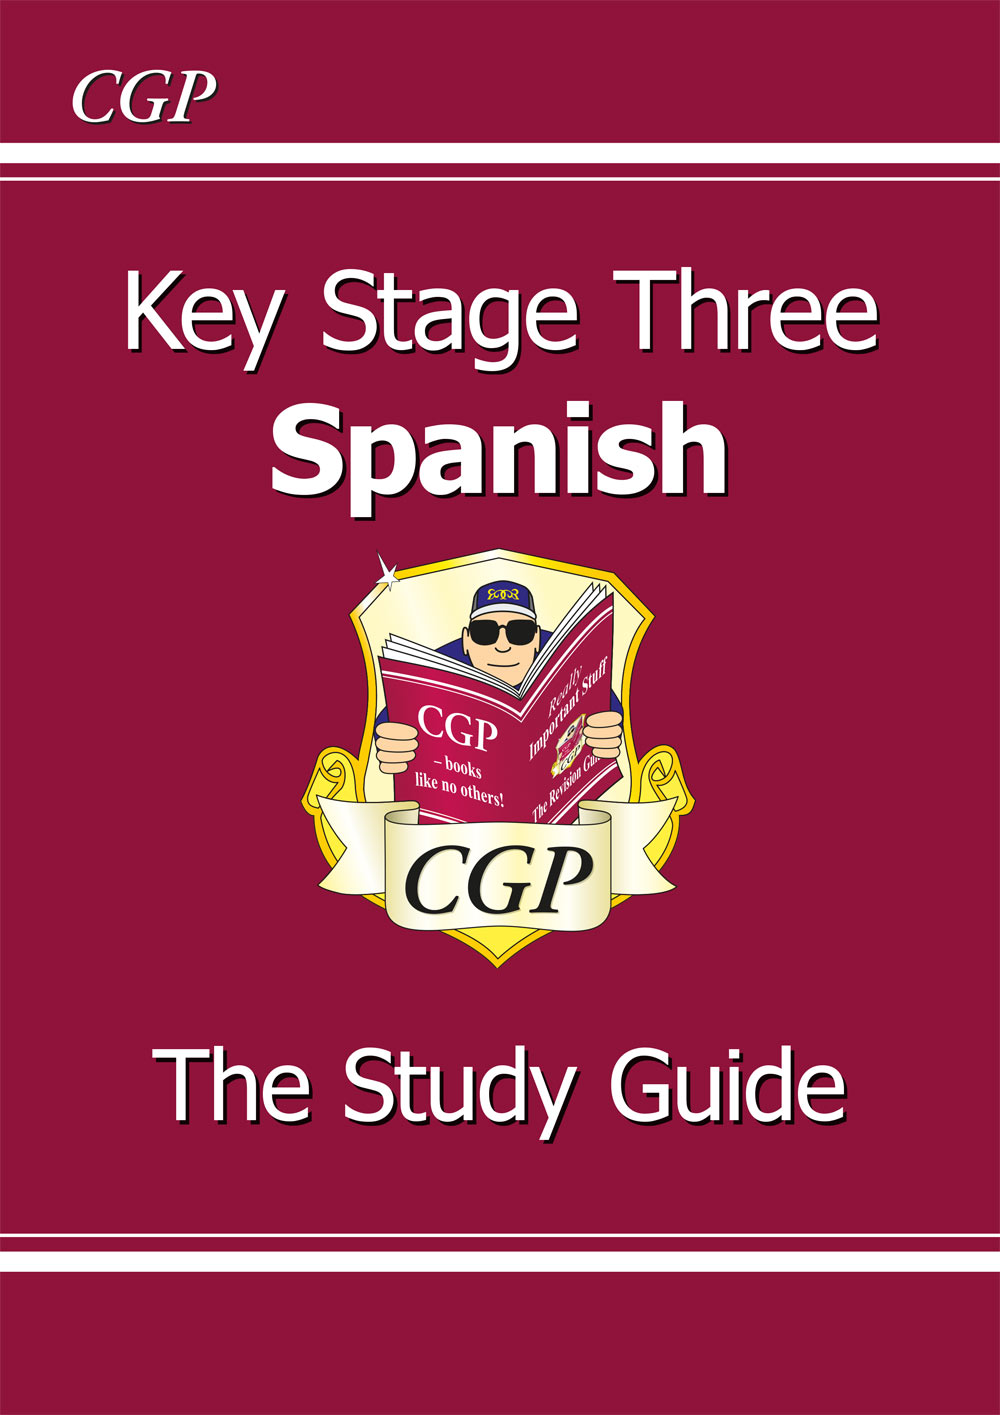 SPHR31 - KS3 Spanish Study Guide